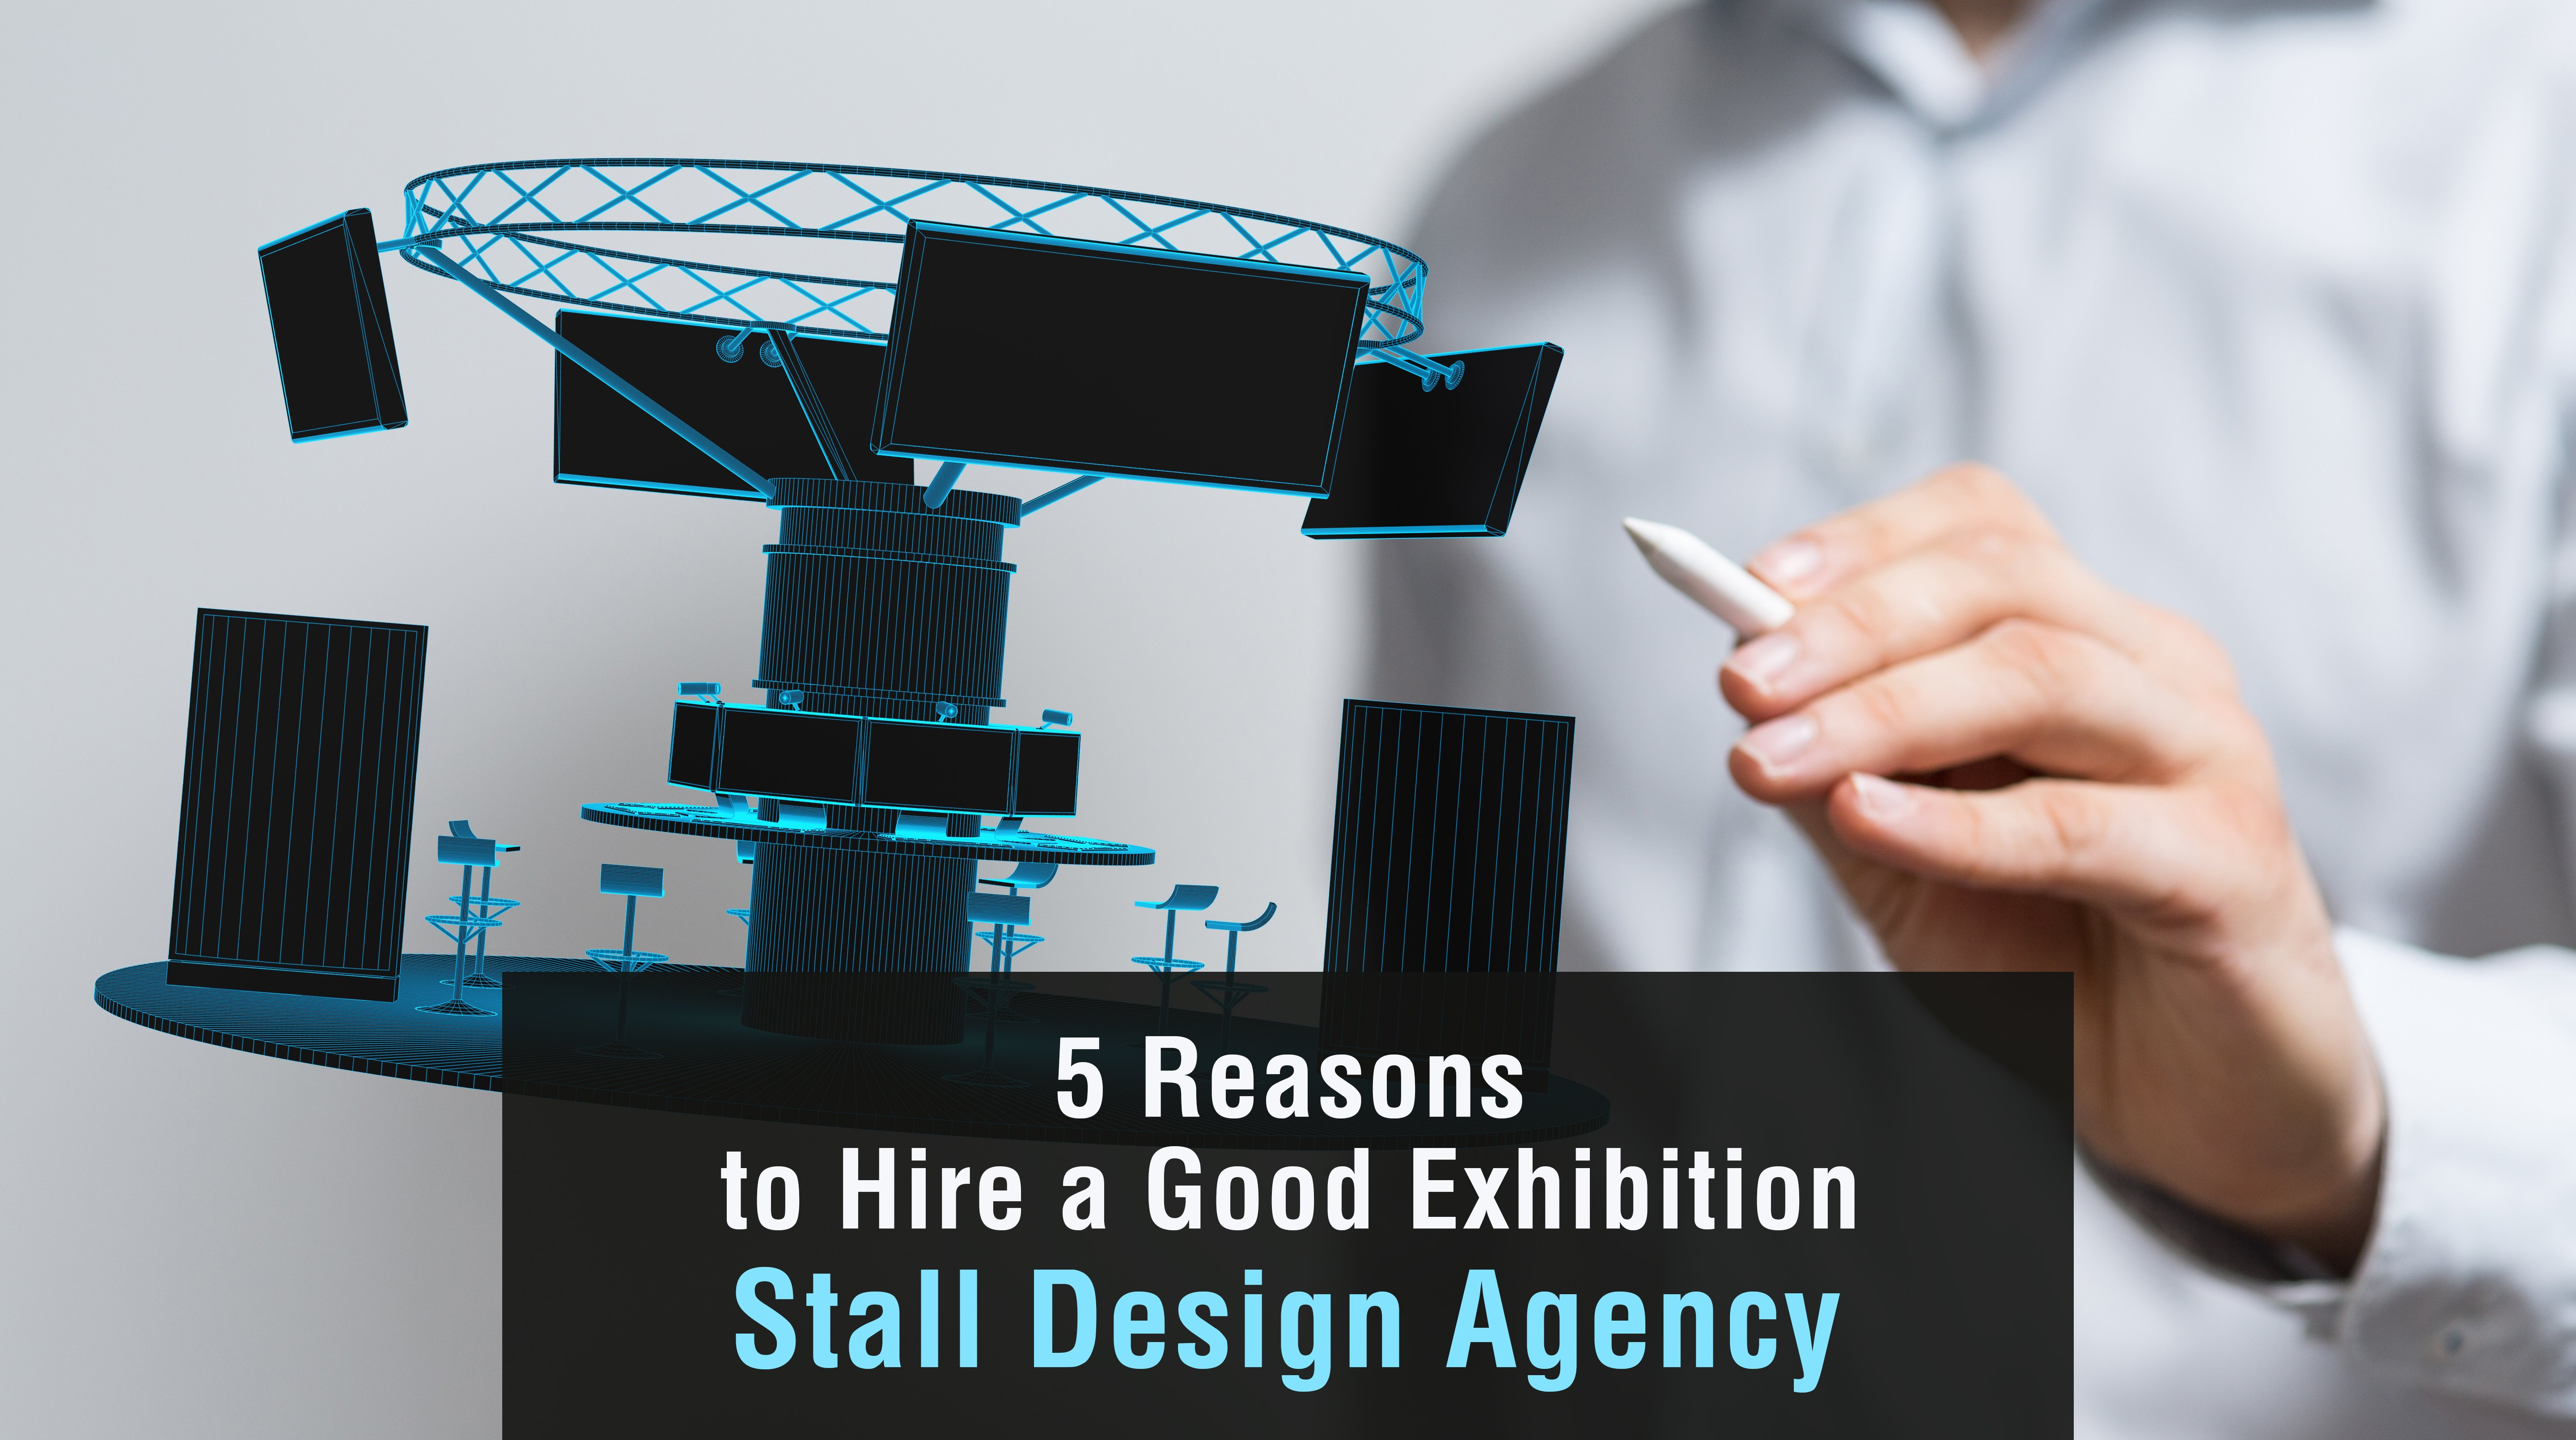 5 Reasons To Hire A Good Exhibition Stall Design Agency